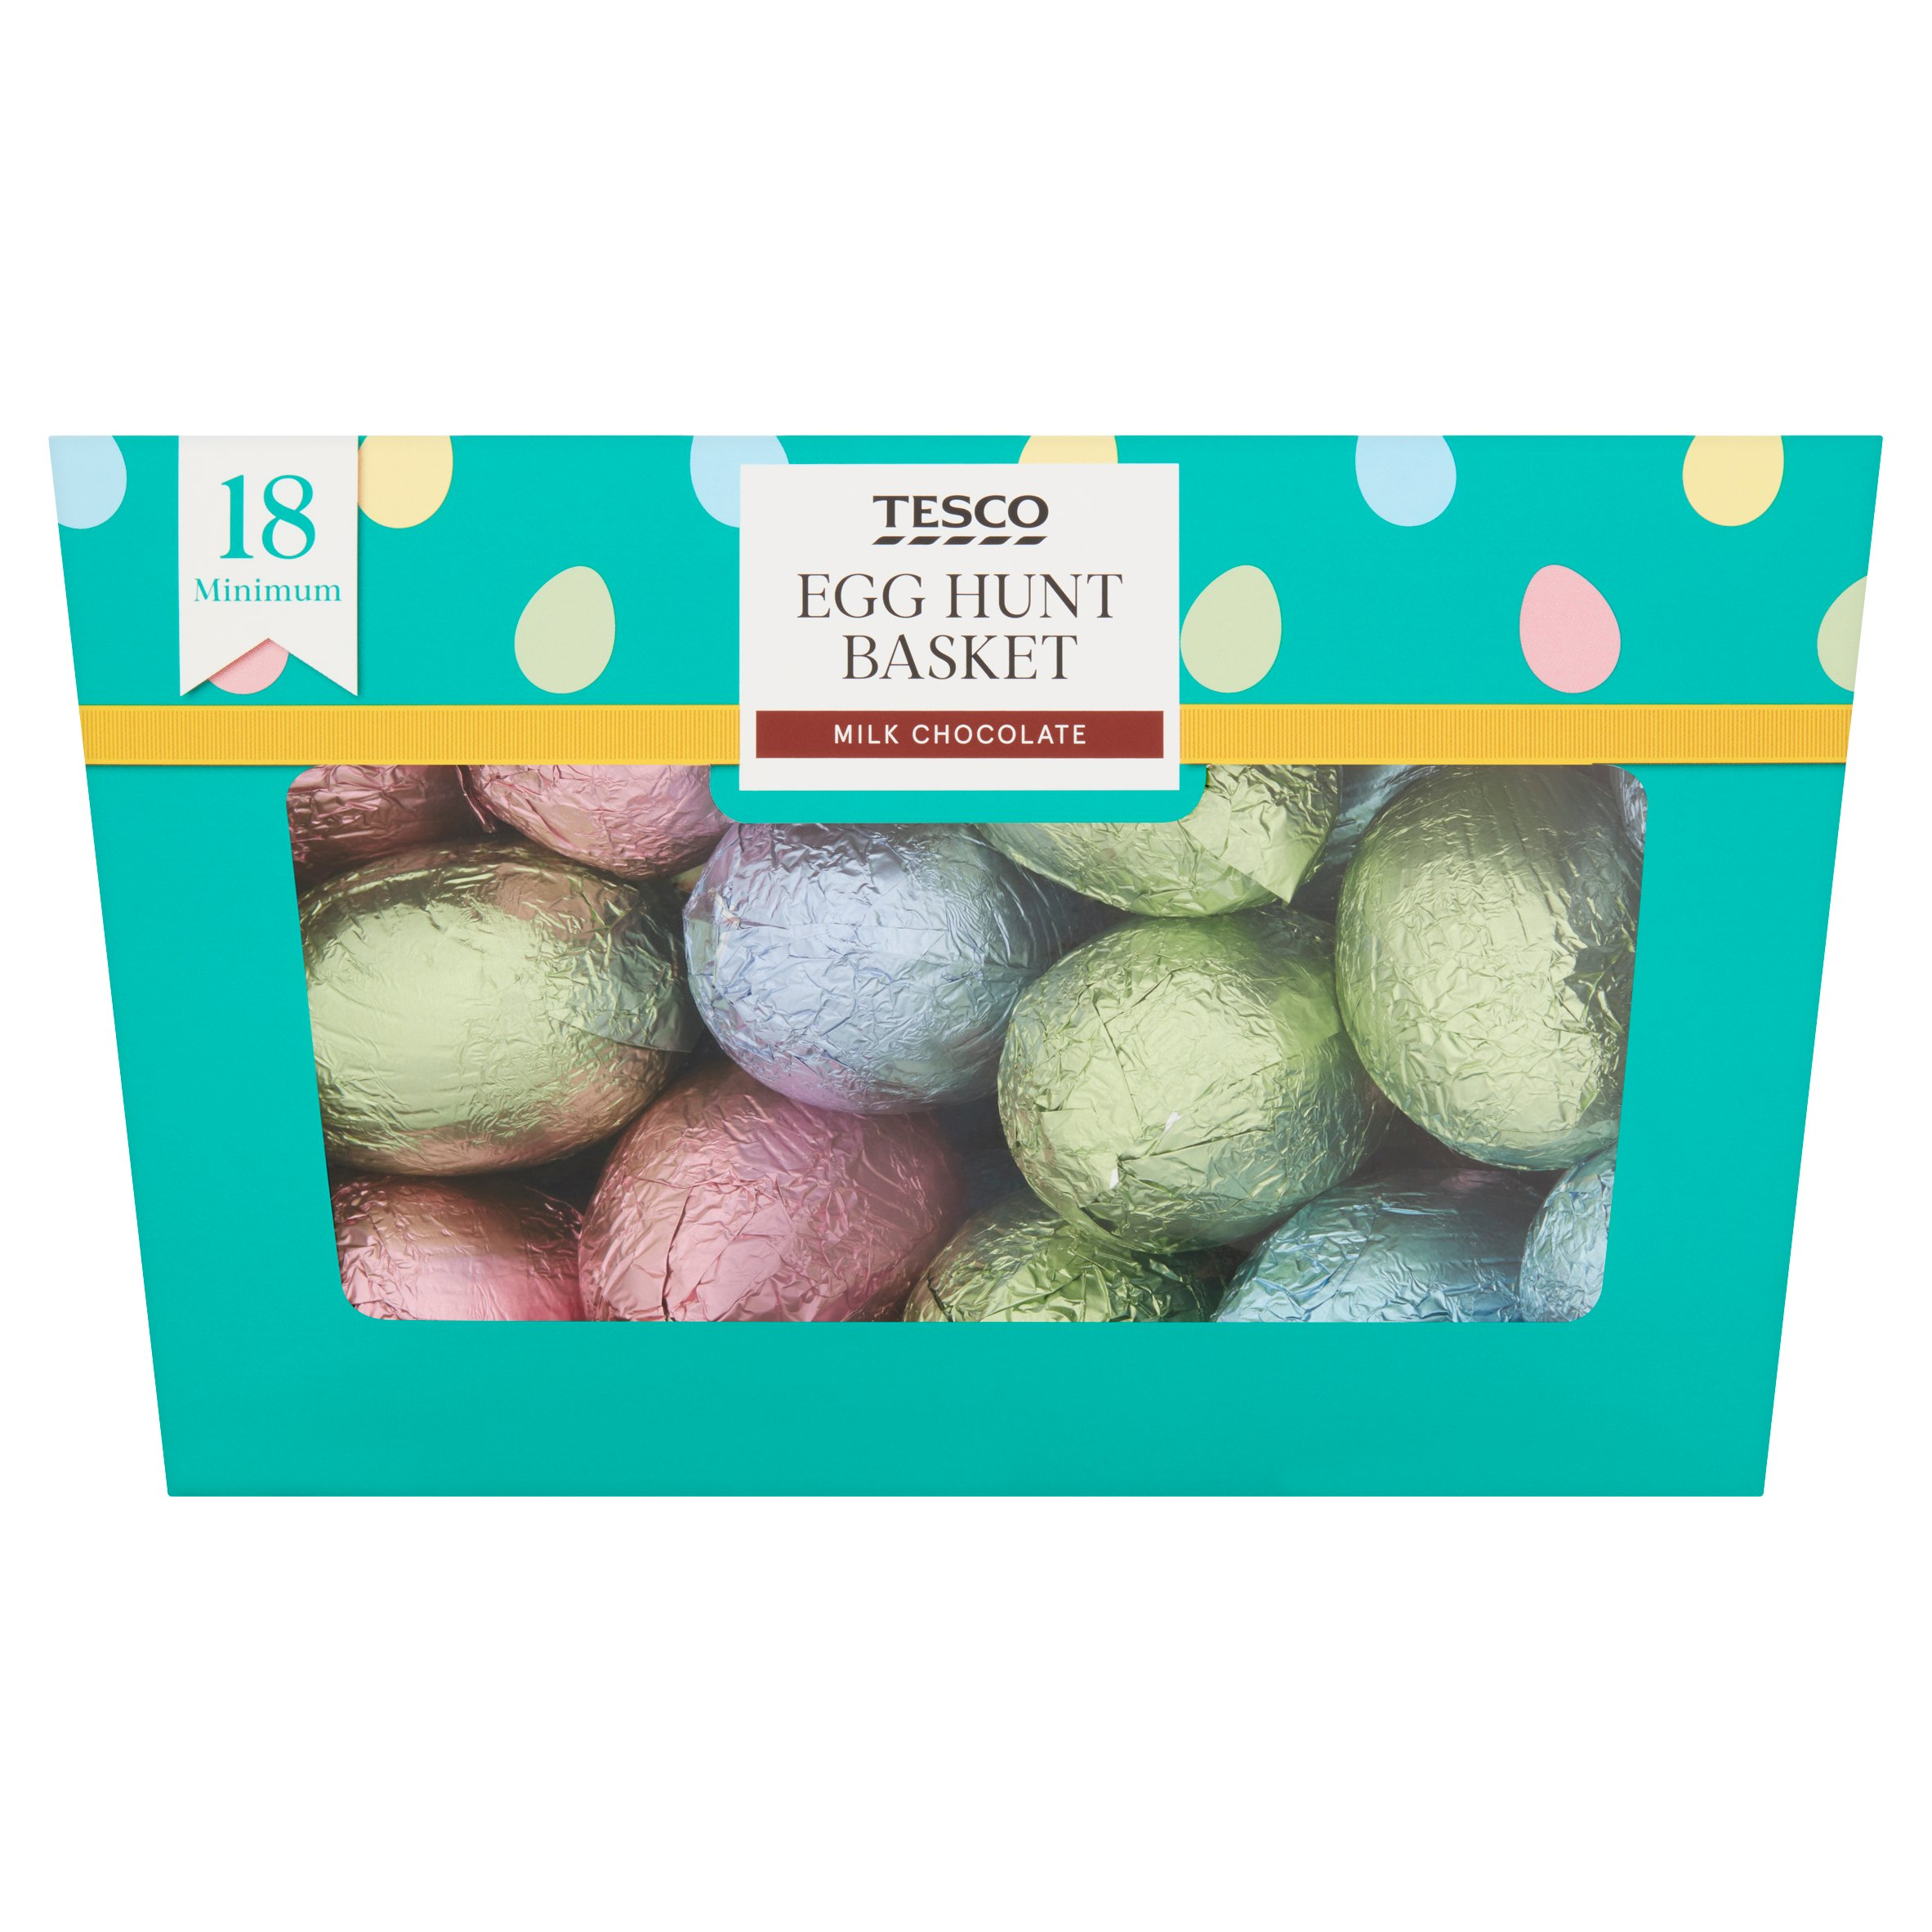 Tesco Egg Hunt Basket 340G